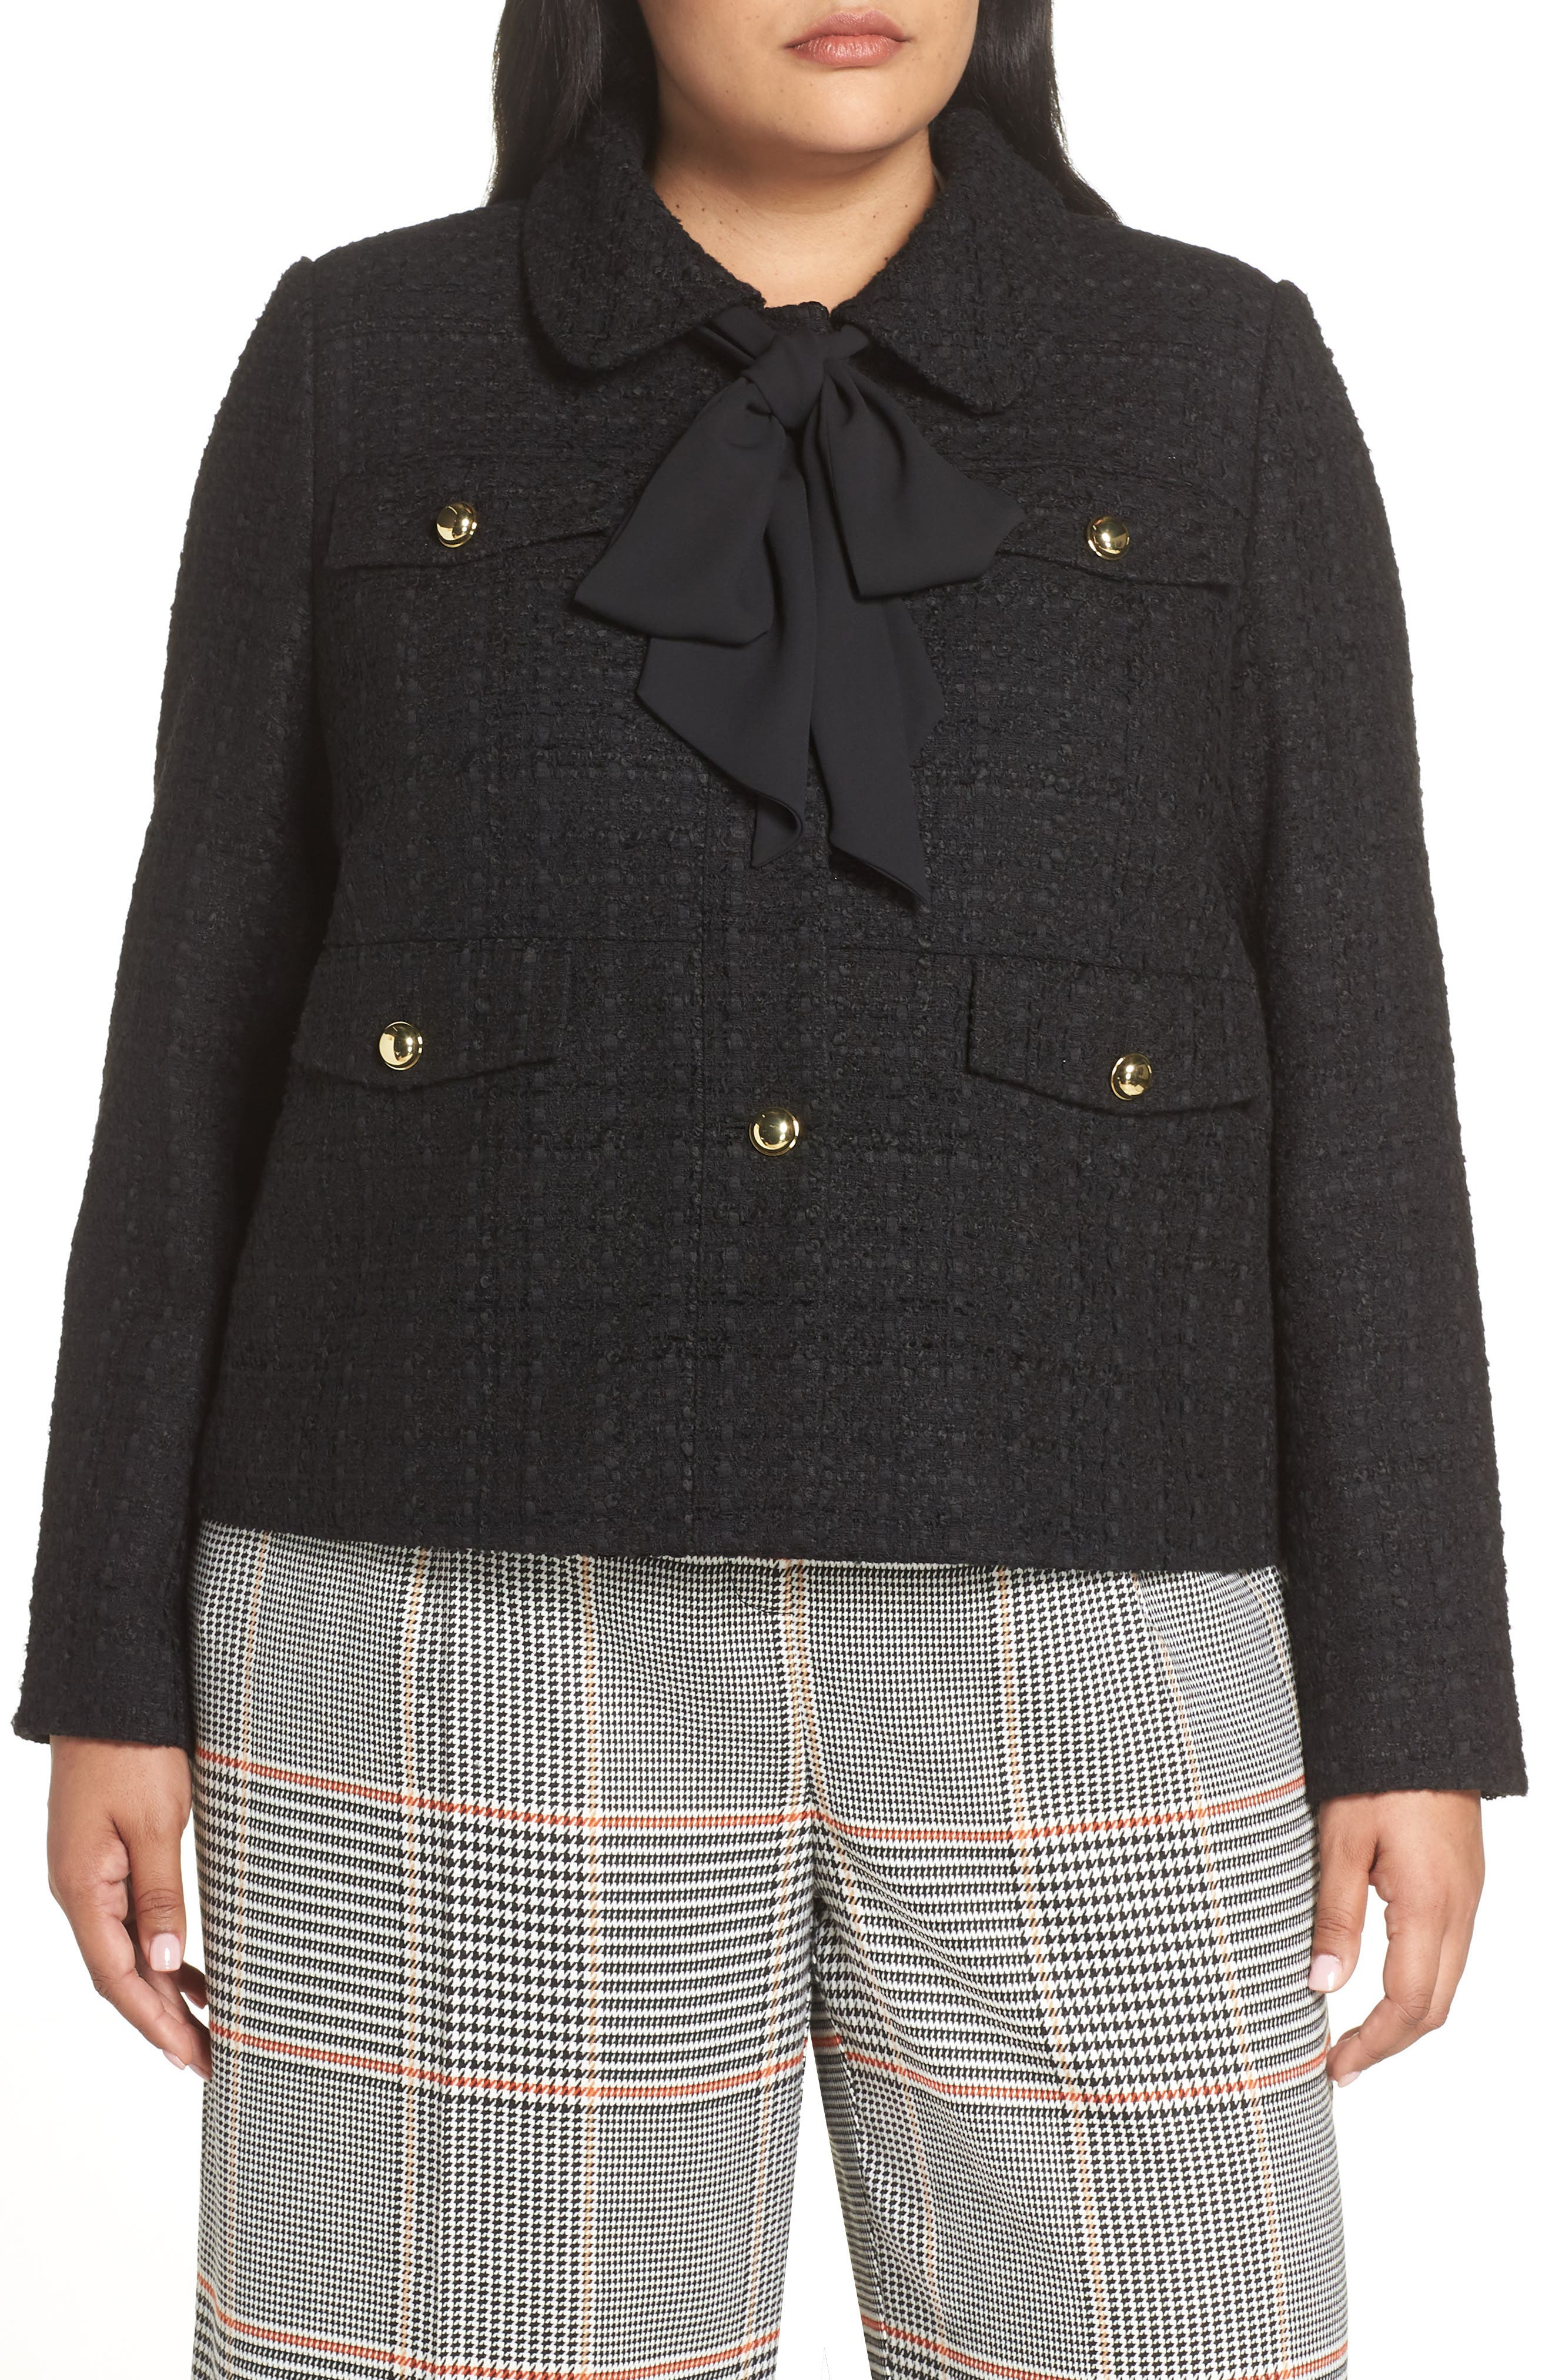 x Atlantic-Pacific Bow Detail Tweed Jacket,                             Main thumbnail 1, color,                             001